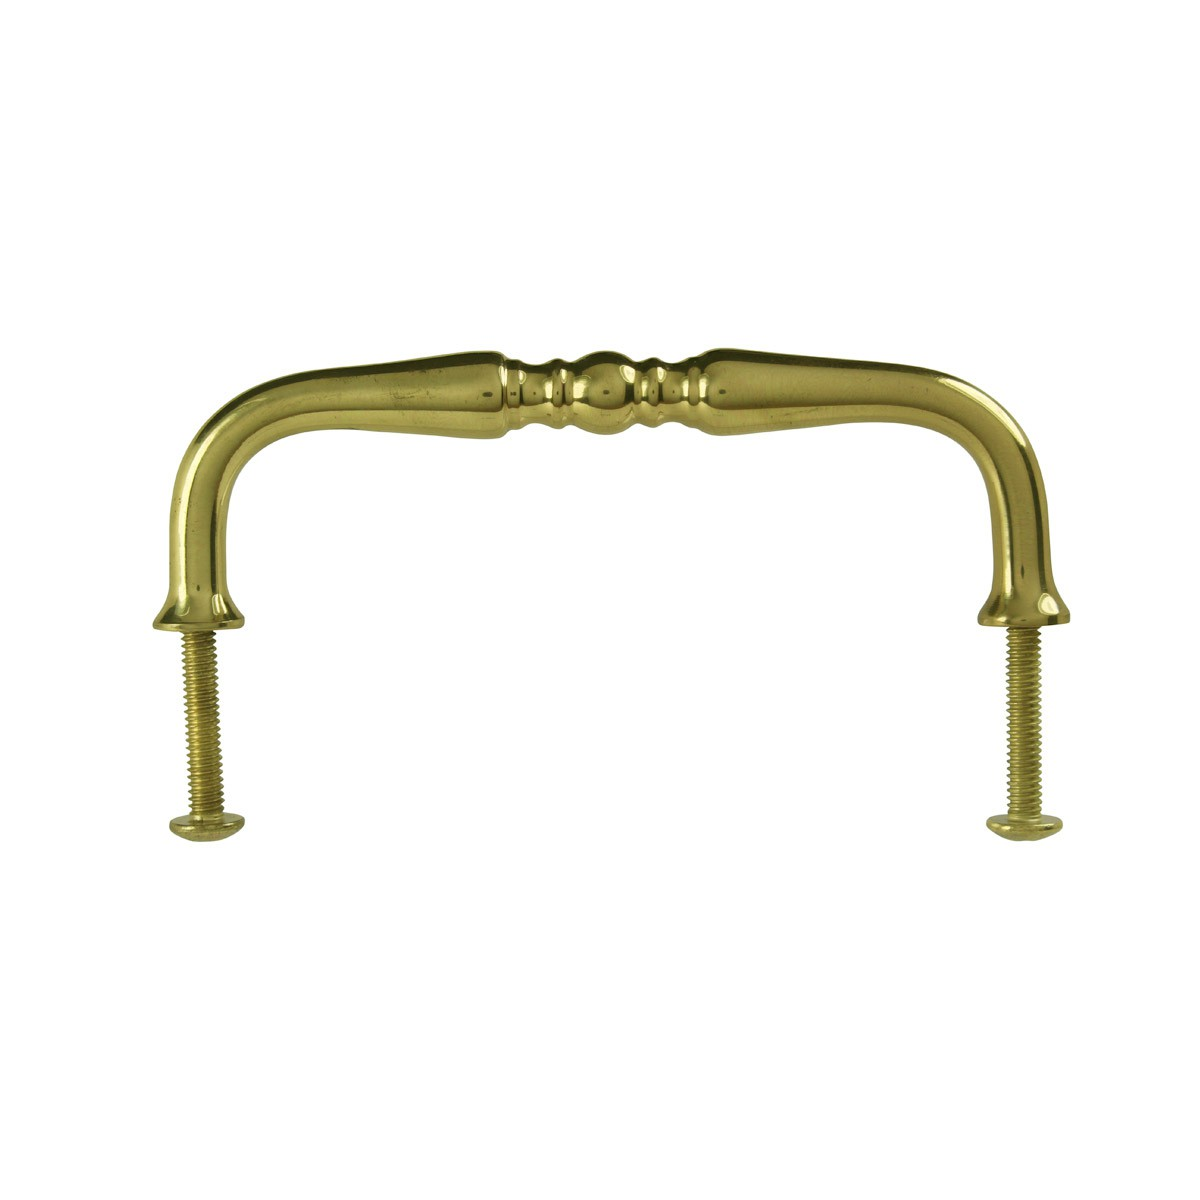 Bright Solid Brass Spooled Cabinet Pull 3 5/8 in Boring Set of 6 Furniture Hardware Cabinet Pull Cabinet Hardware